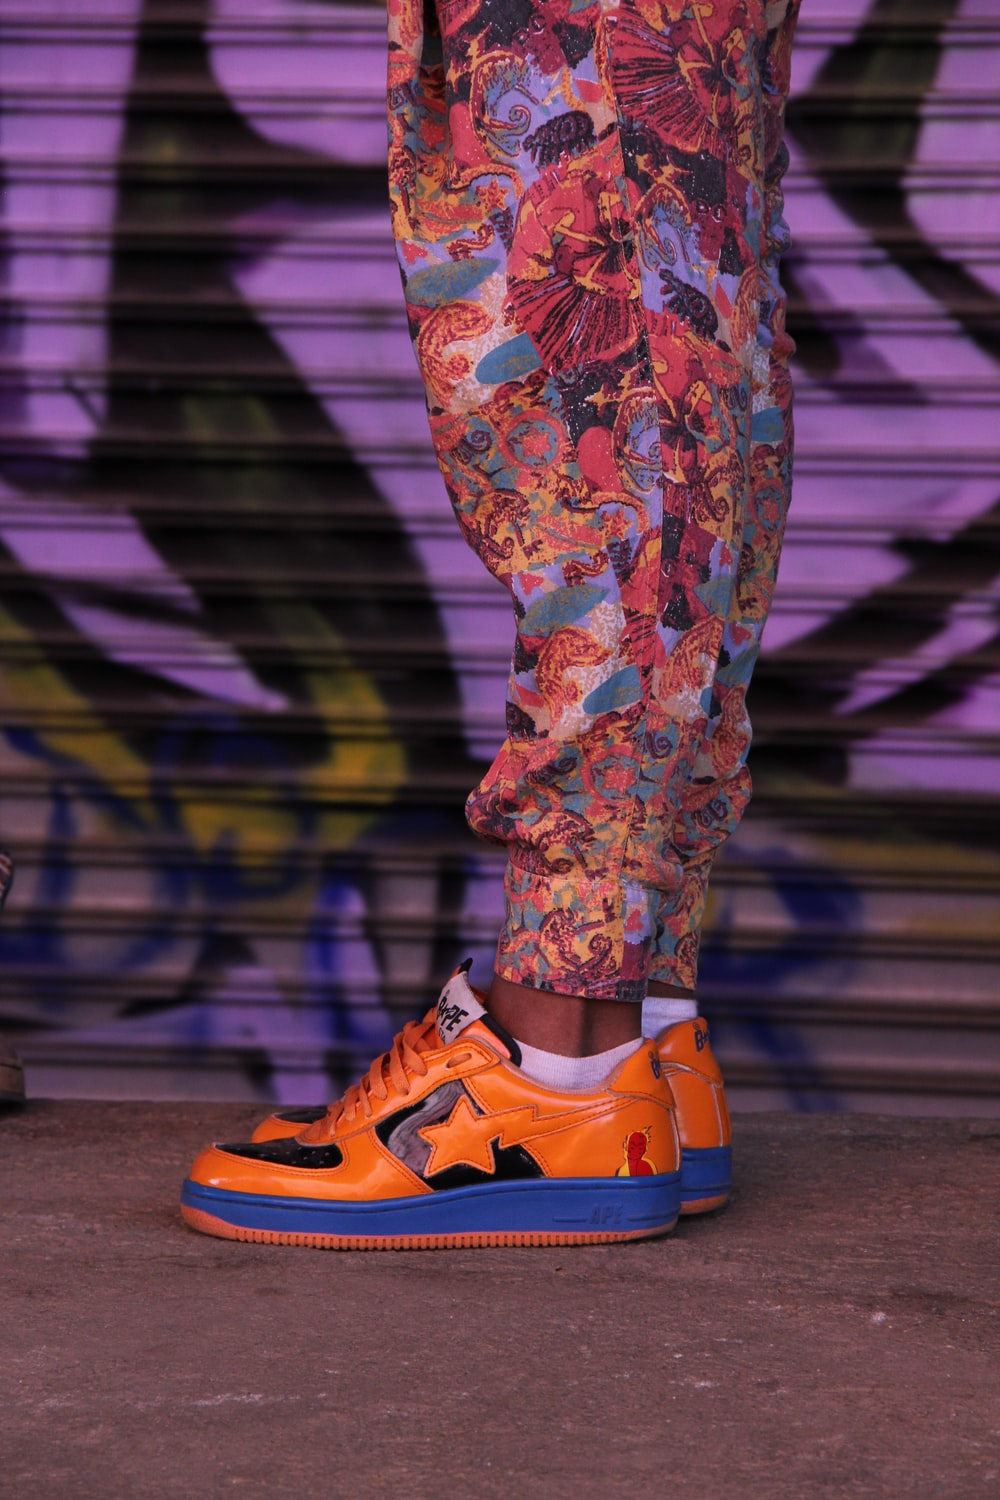 person wearing orange-and-blue low-top sneakers